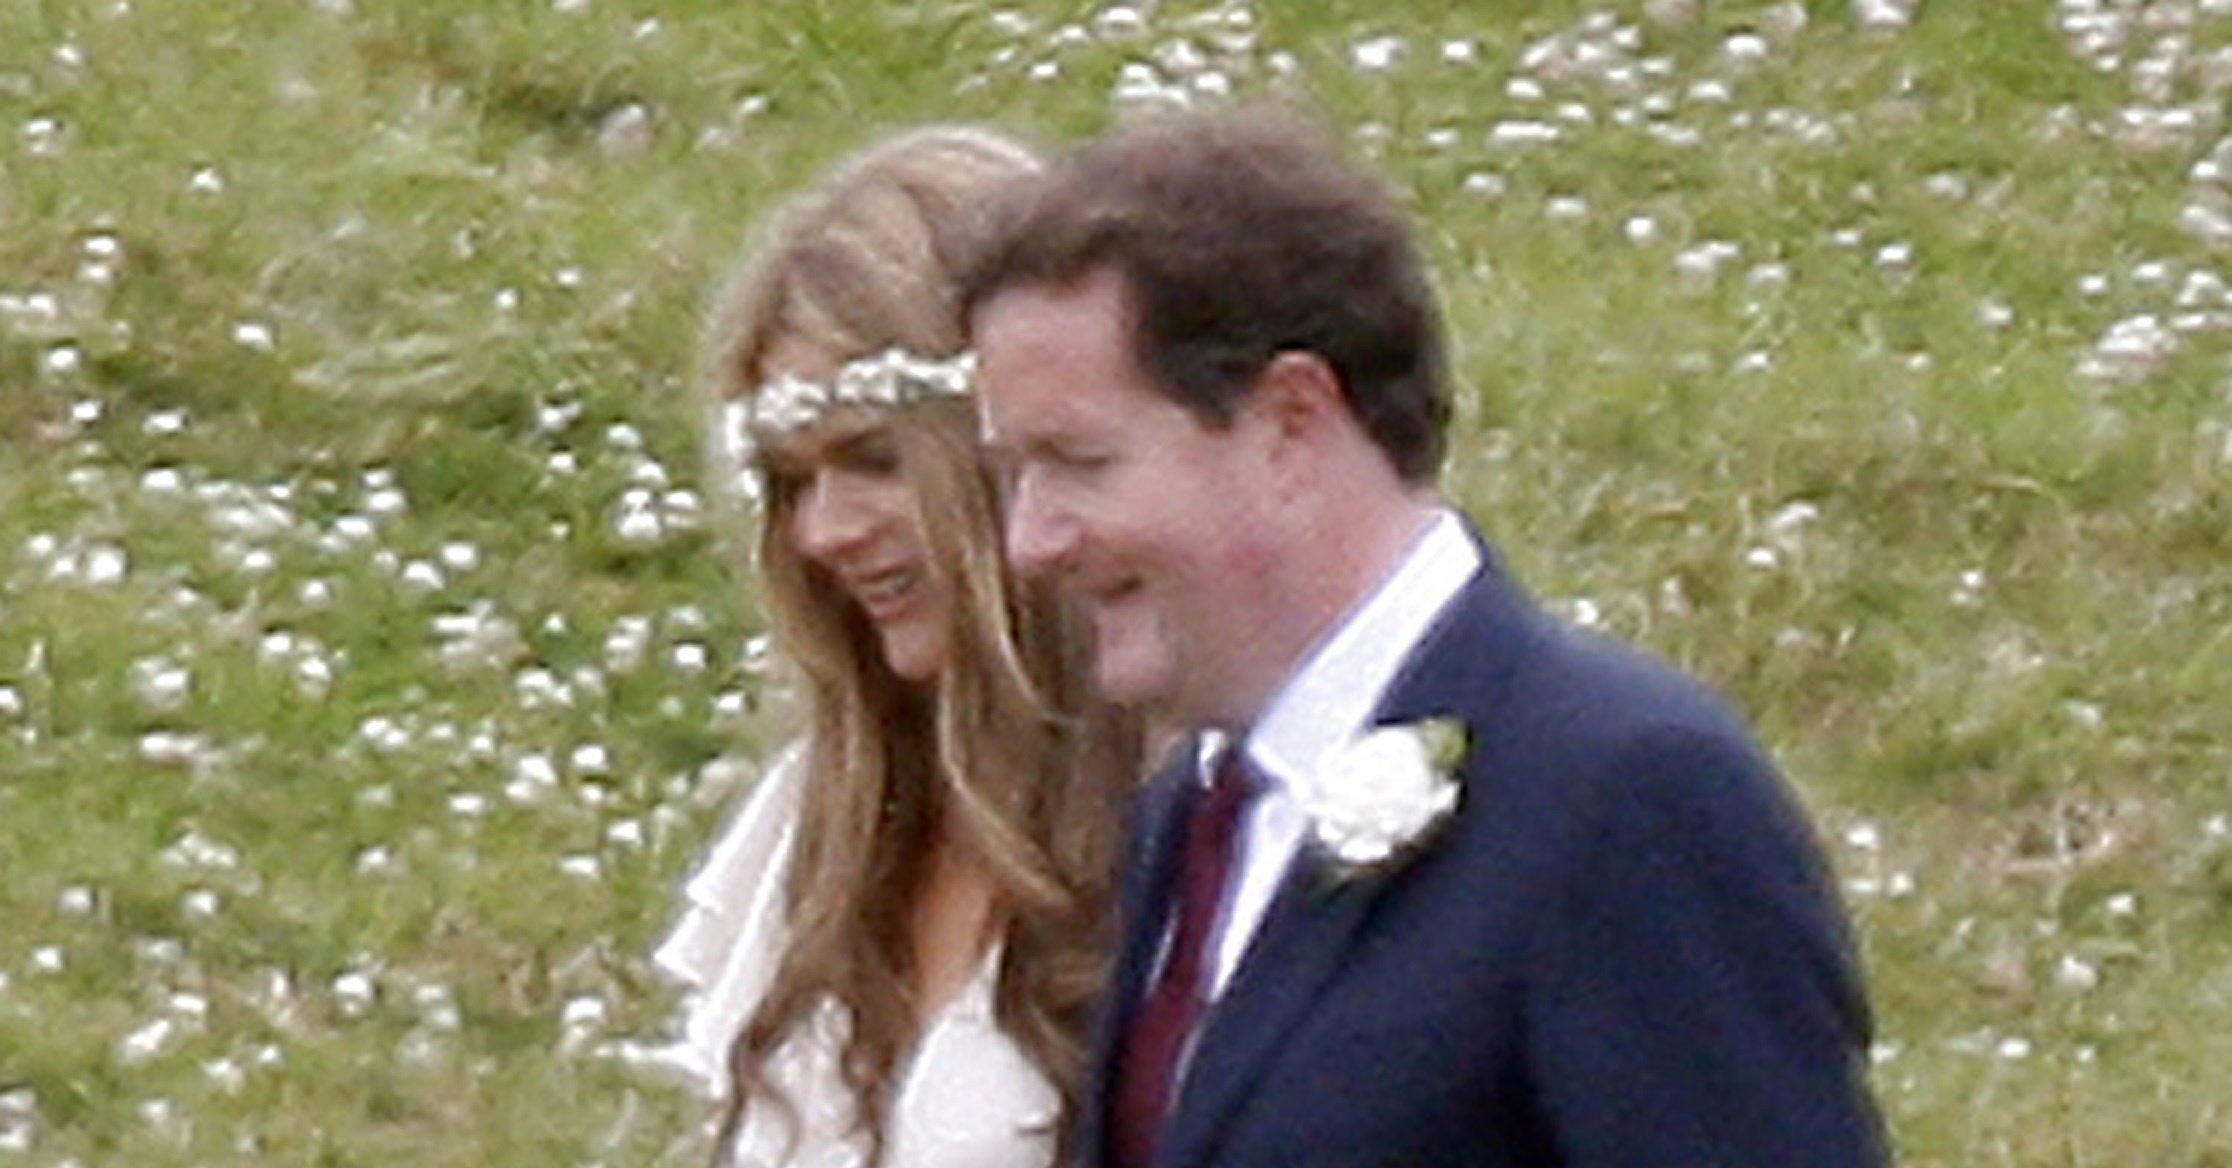 Piers Morgan Married Celia Walden In England In June 2010